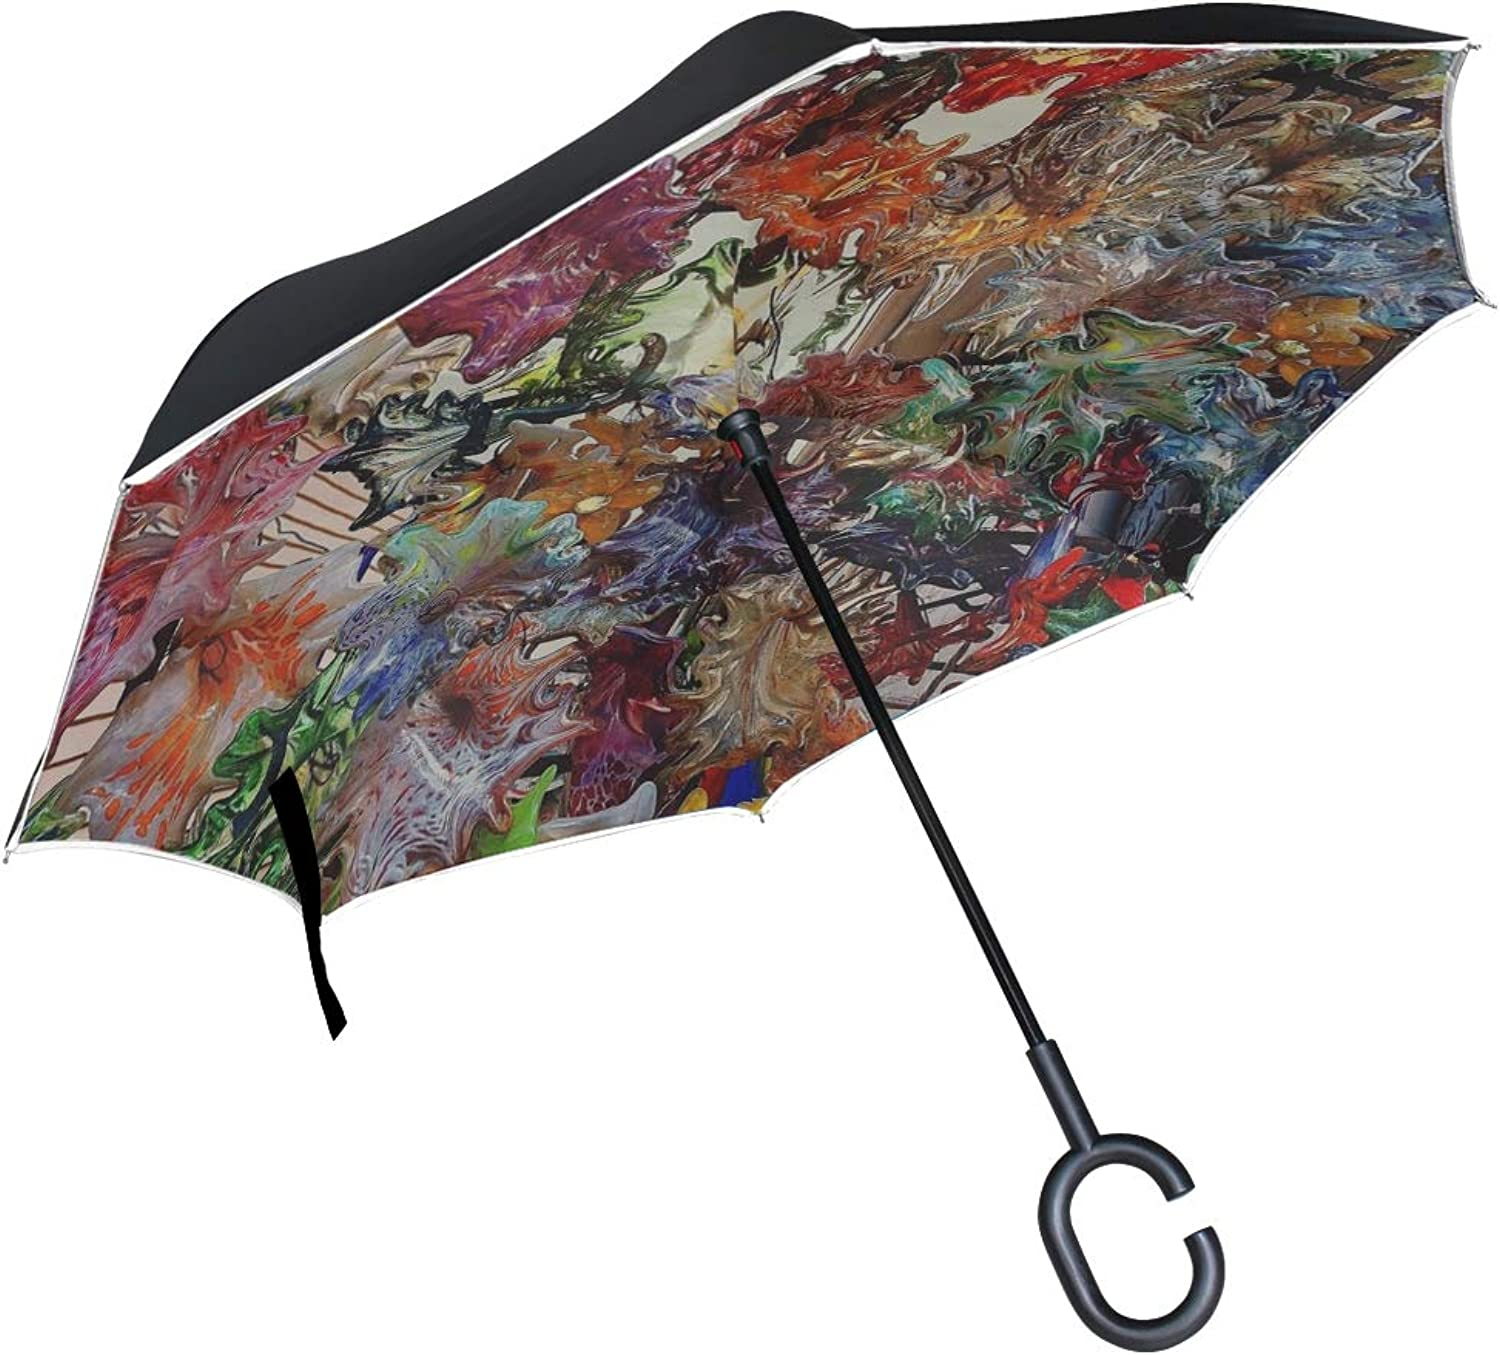 Double Layer Ingreened Glass Flowers Decoration colorful New Orleans Umbrellas Reverse Folding Umbrella Windproof Uv Predection Big Straight Umbrella for Car Rain Outdoor with CShaped Handle